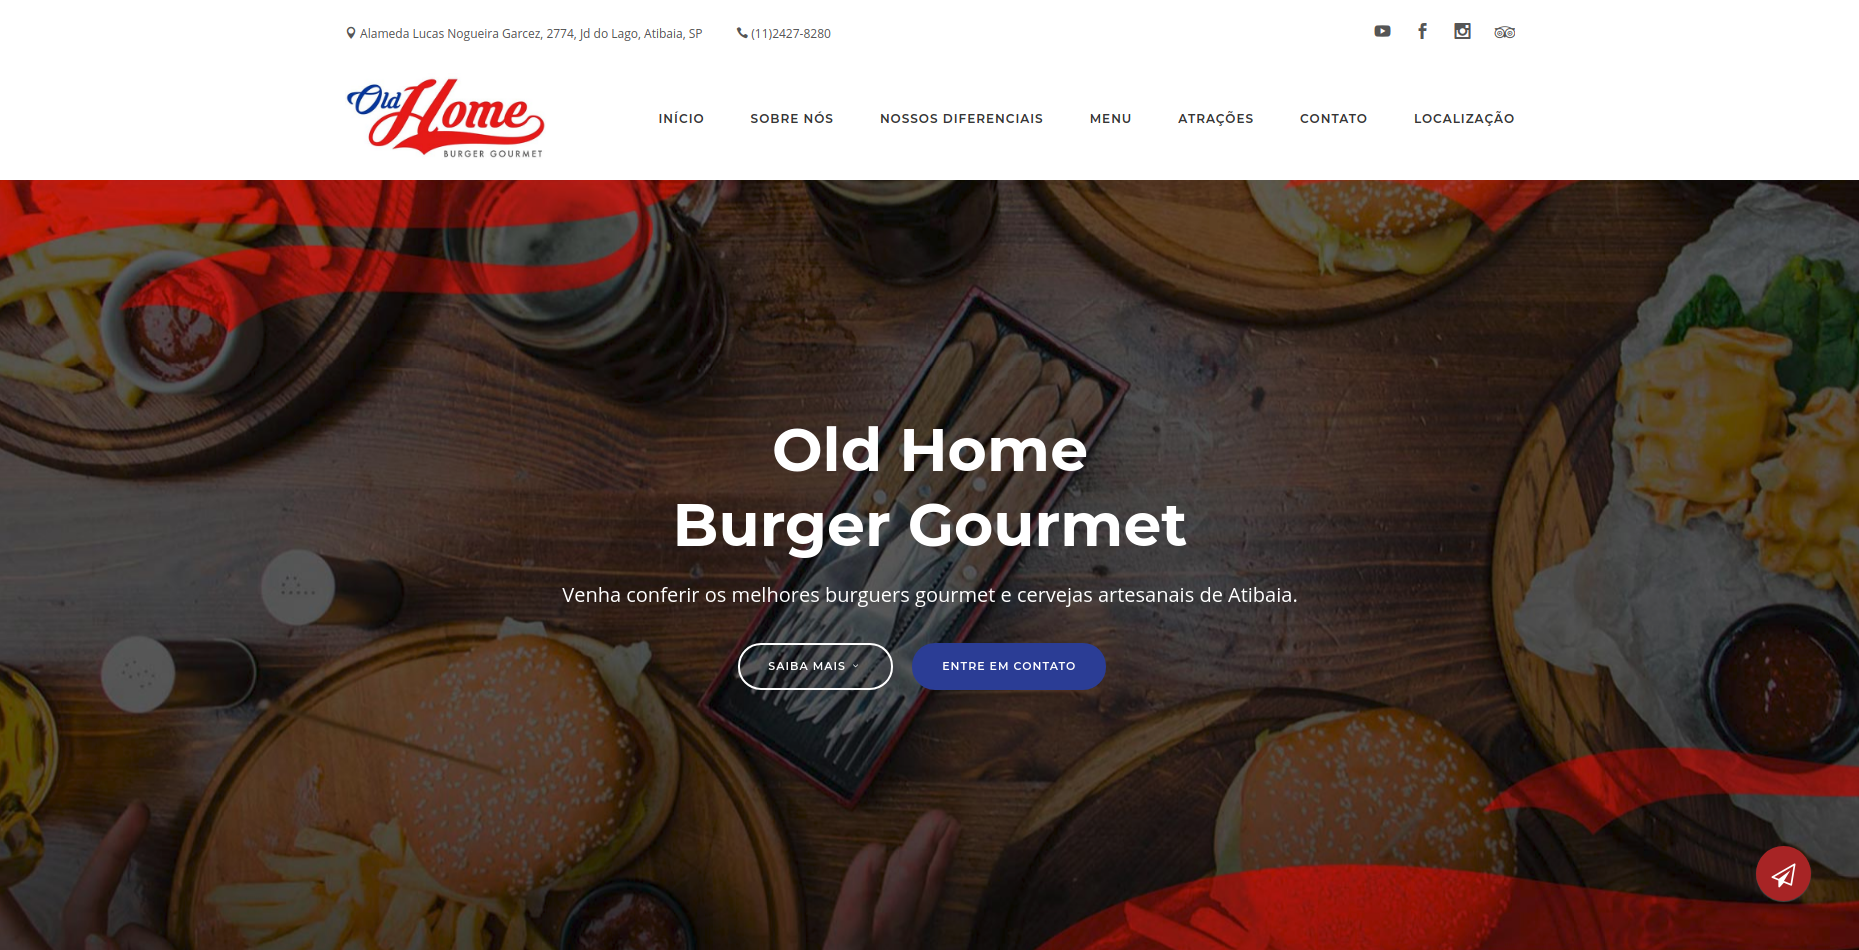 Old Home Burger Gourmet